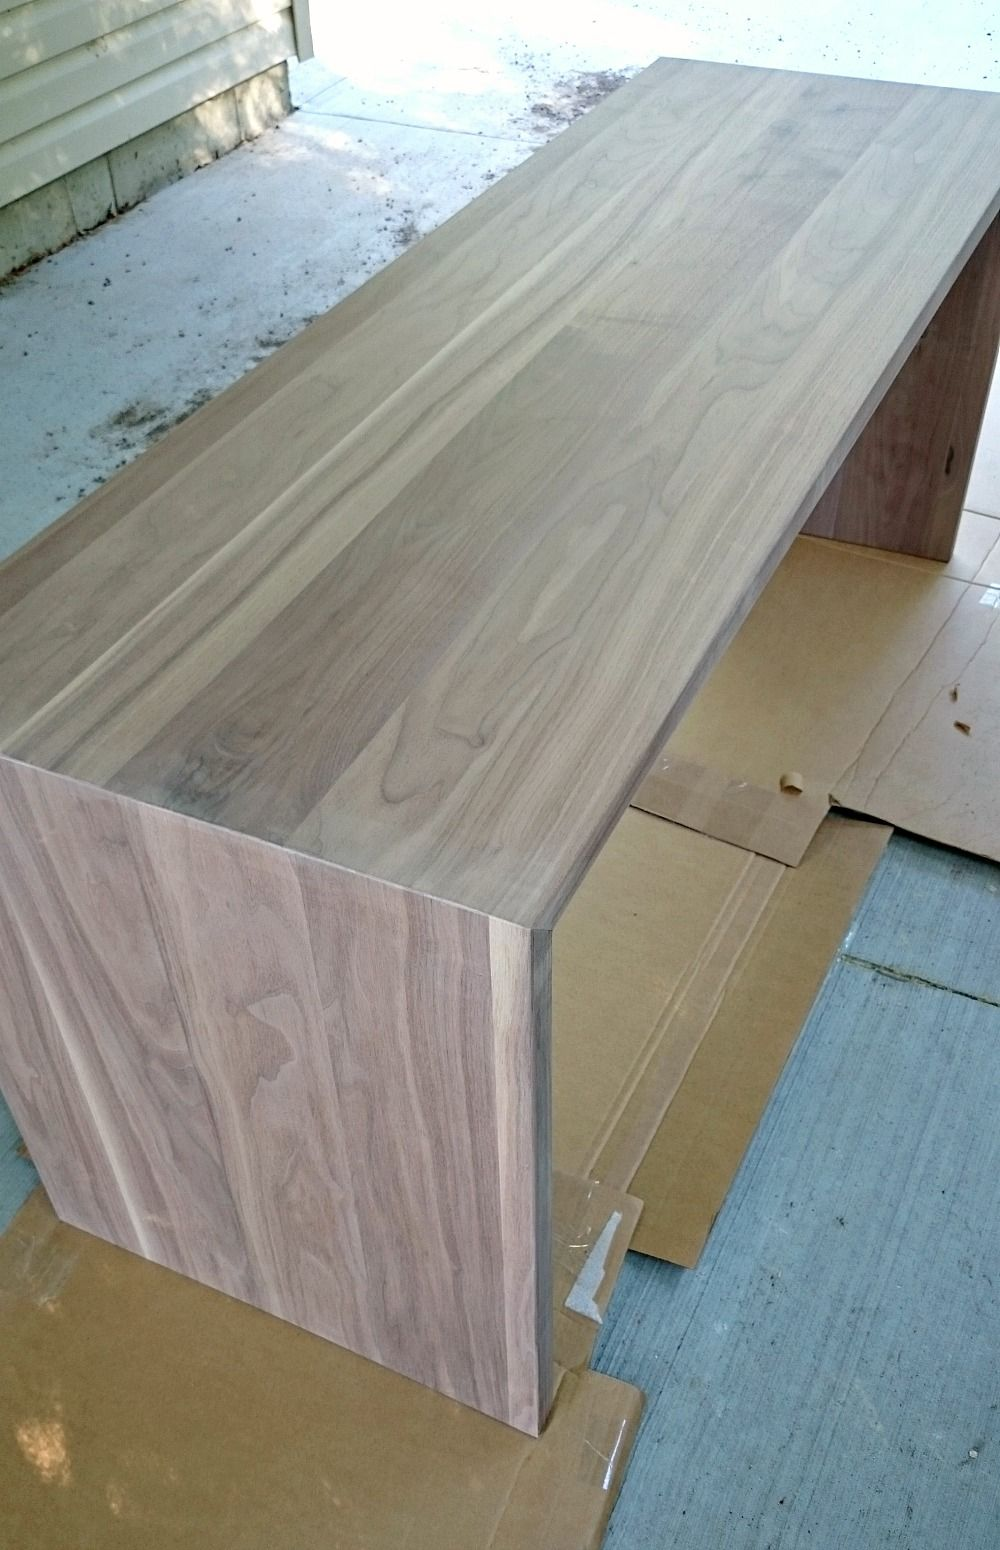 Solid Walnut Diy Waterfall Desk For Two Waterfall Countertop